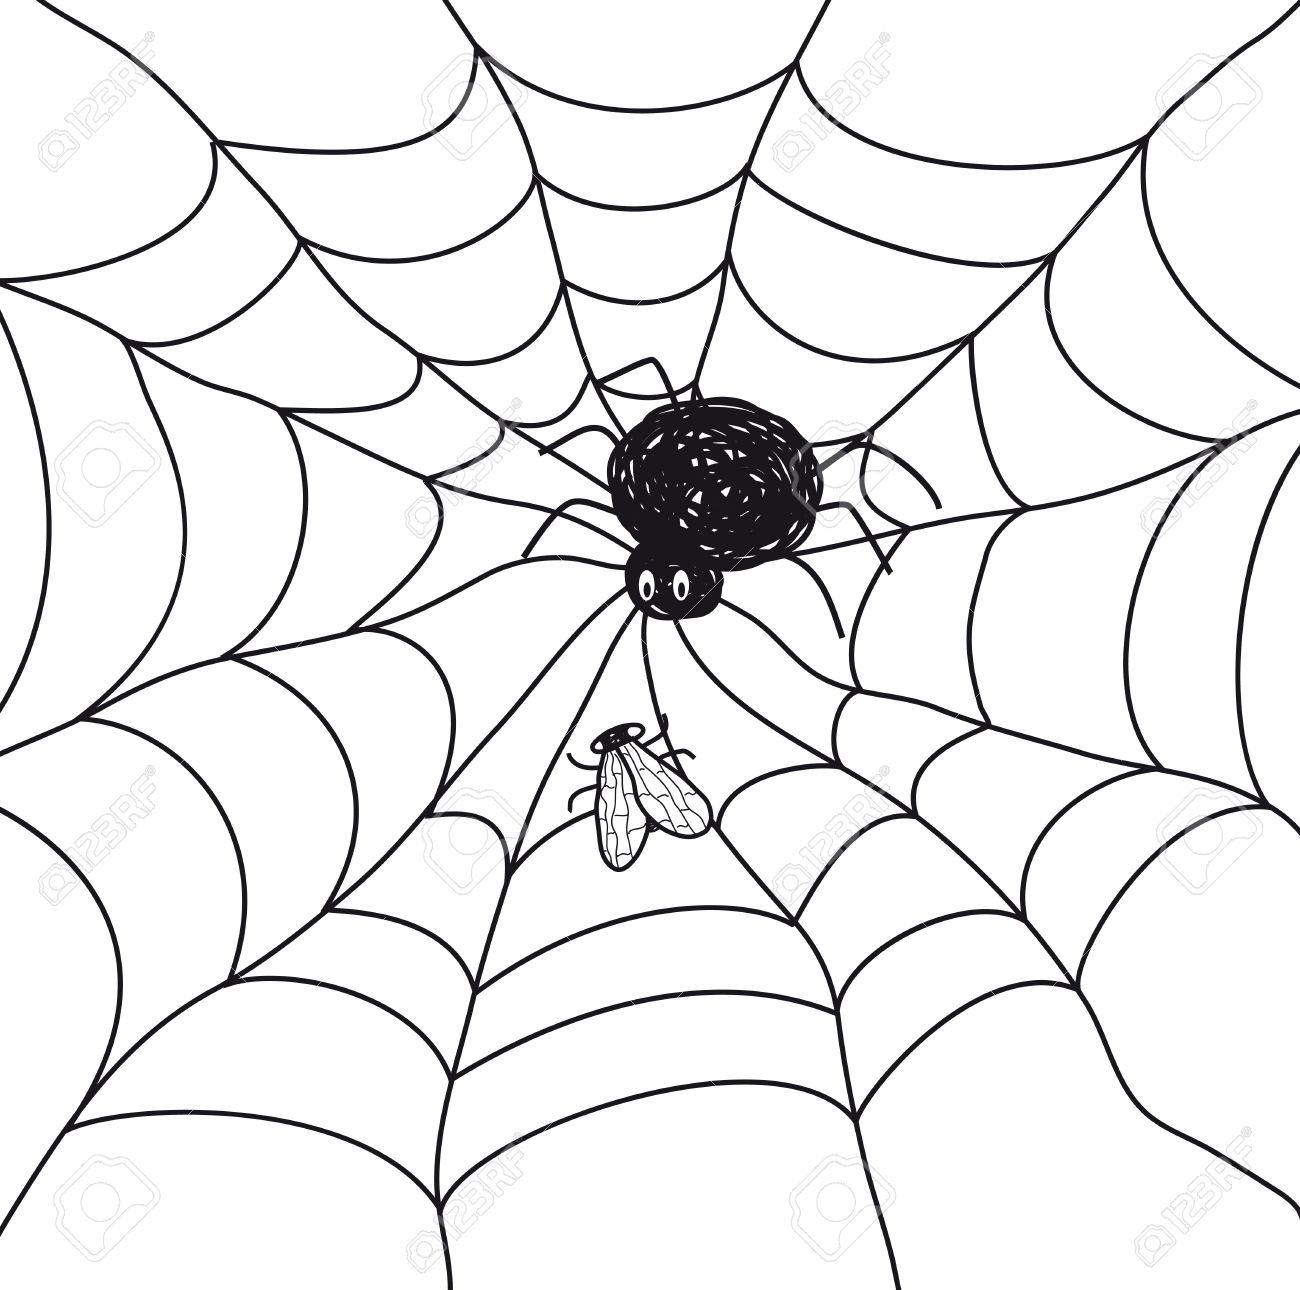 1300x1290 Spider With A Fly In A Web Illustration On White Background